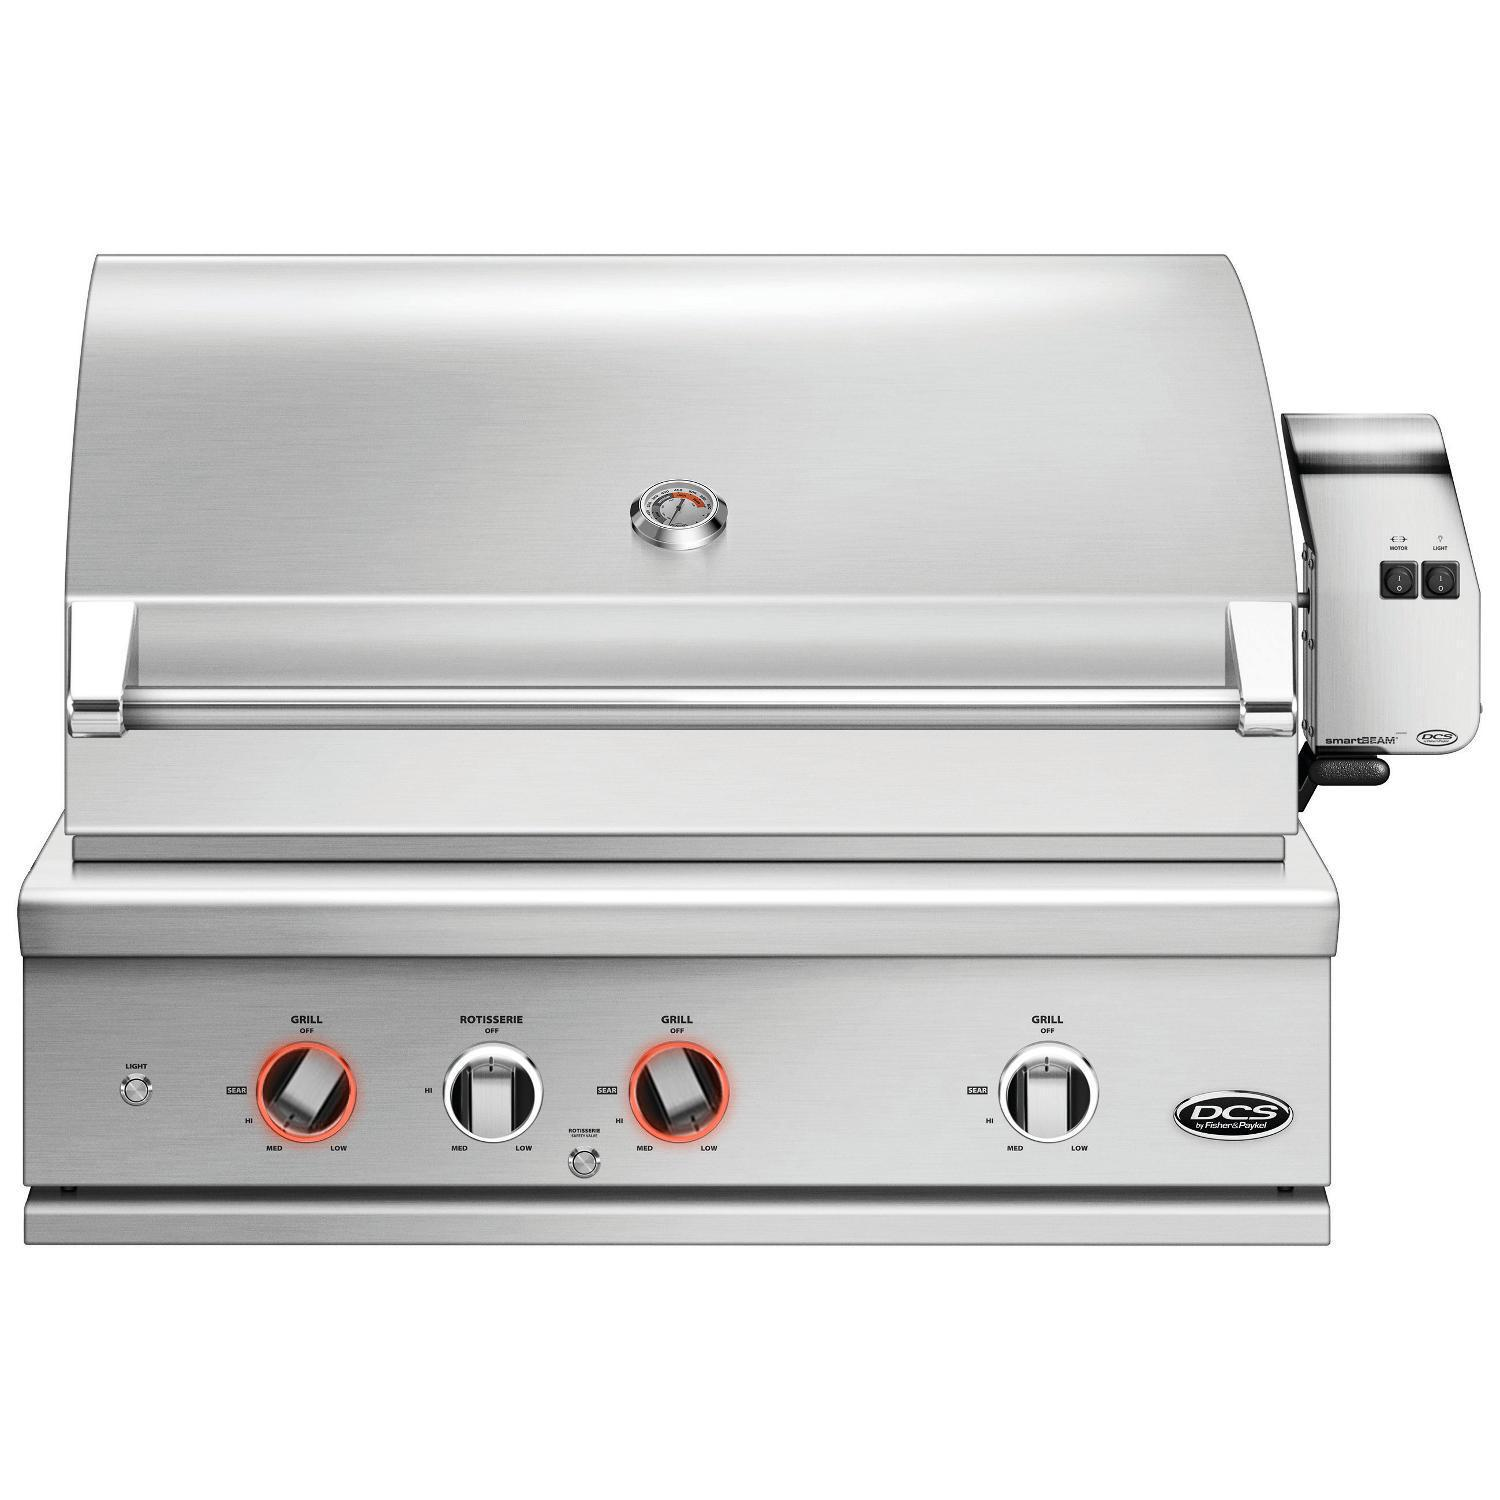 DCS Series 9 Evolution 36 Built-In Natural Gas Grill With Rotisserie - BE1-36RC-N